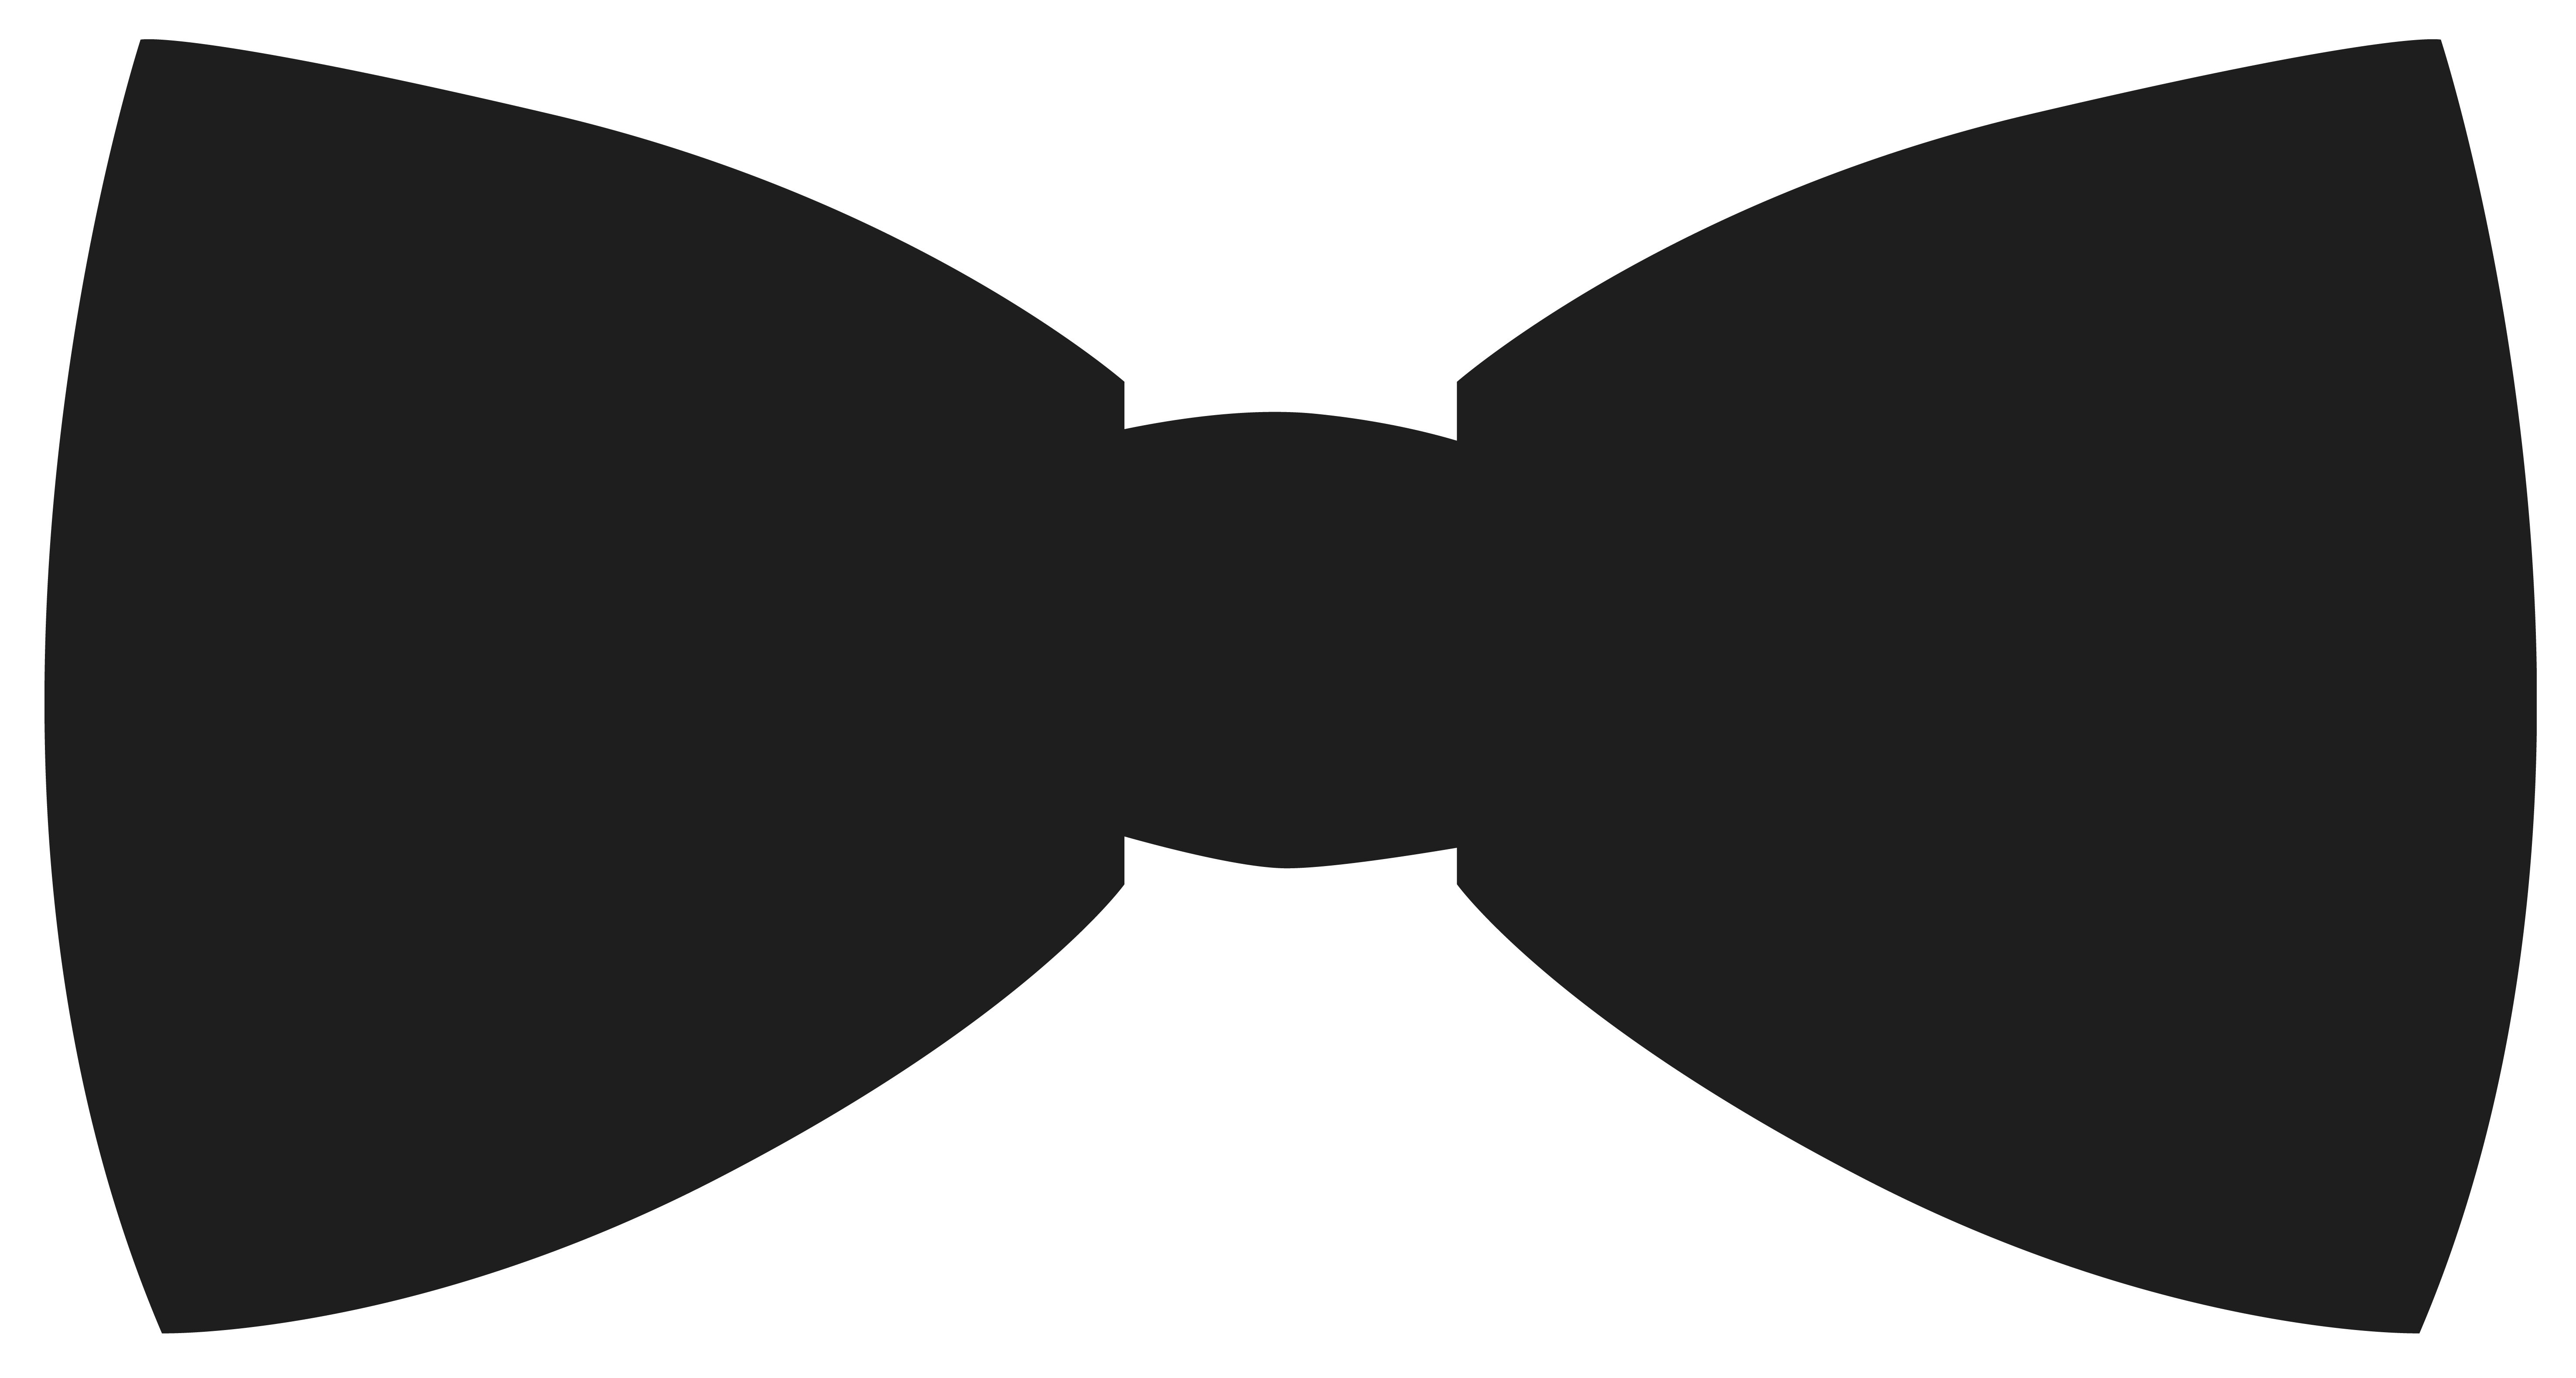 tie clipart bow